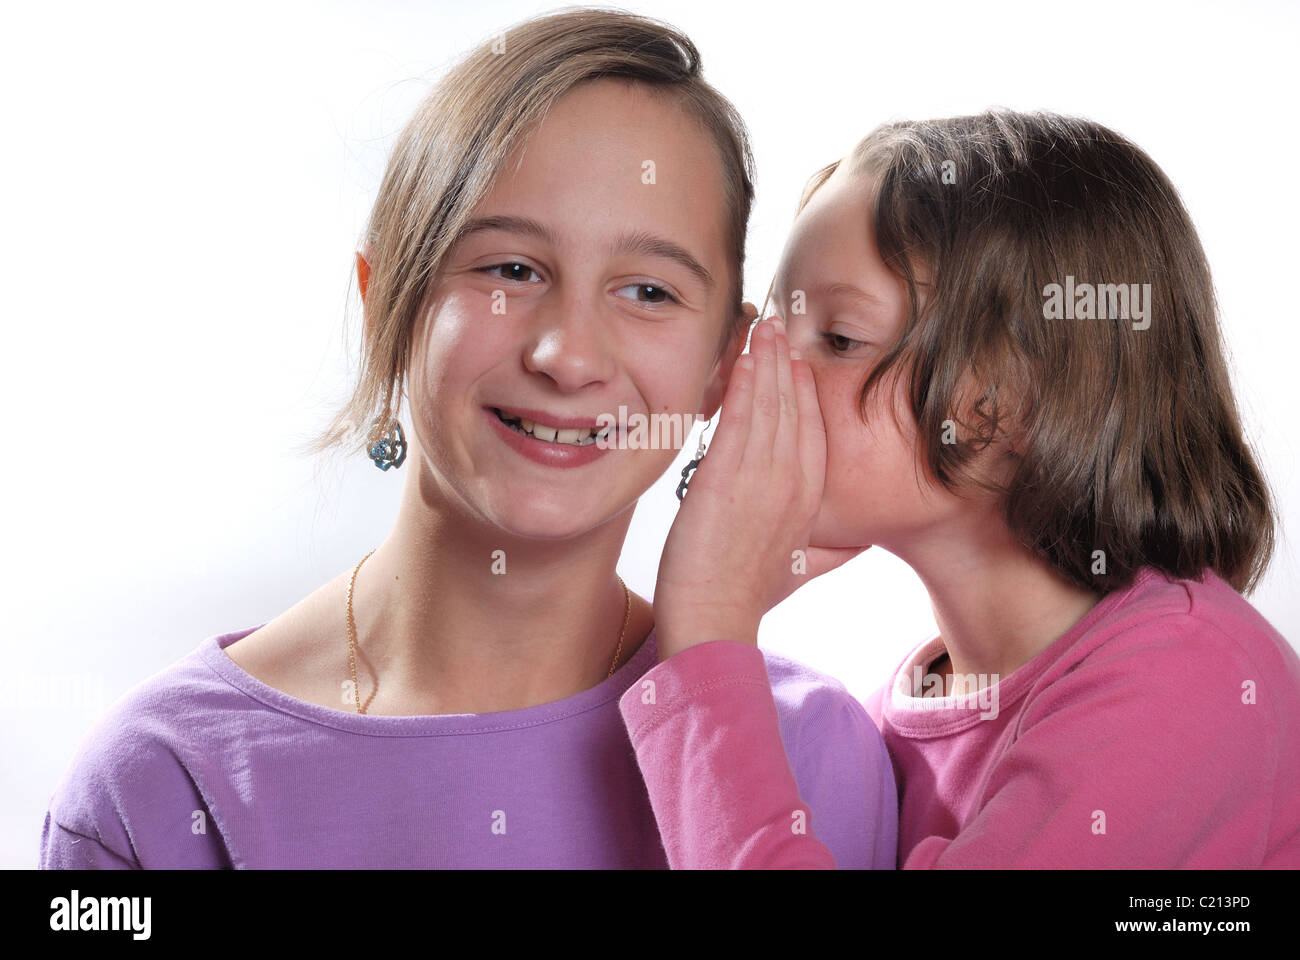 complicity between sisters - Stock Image